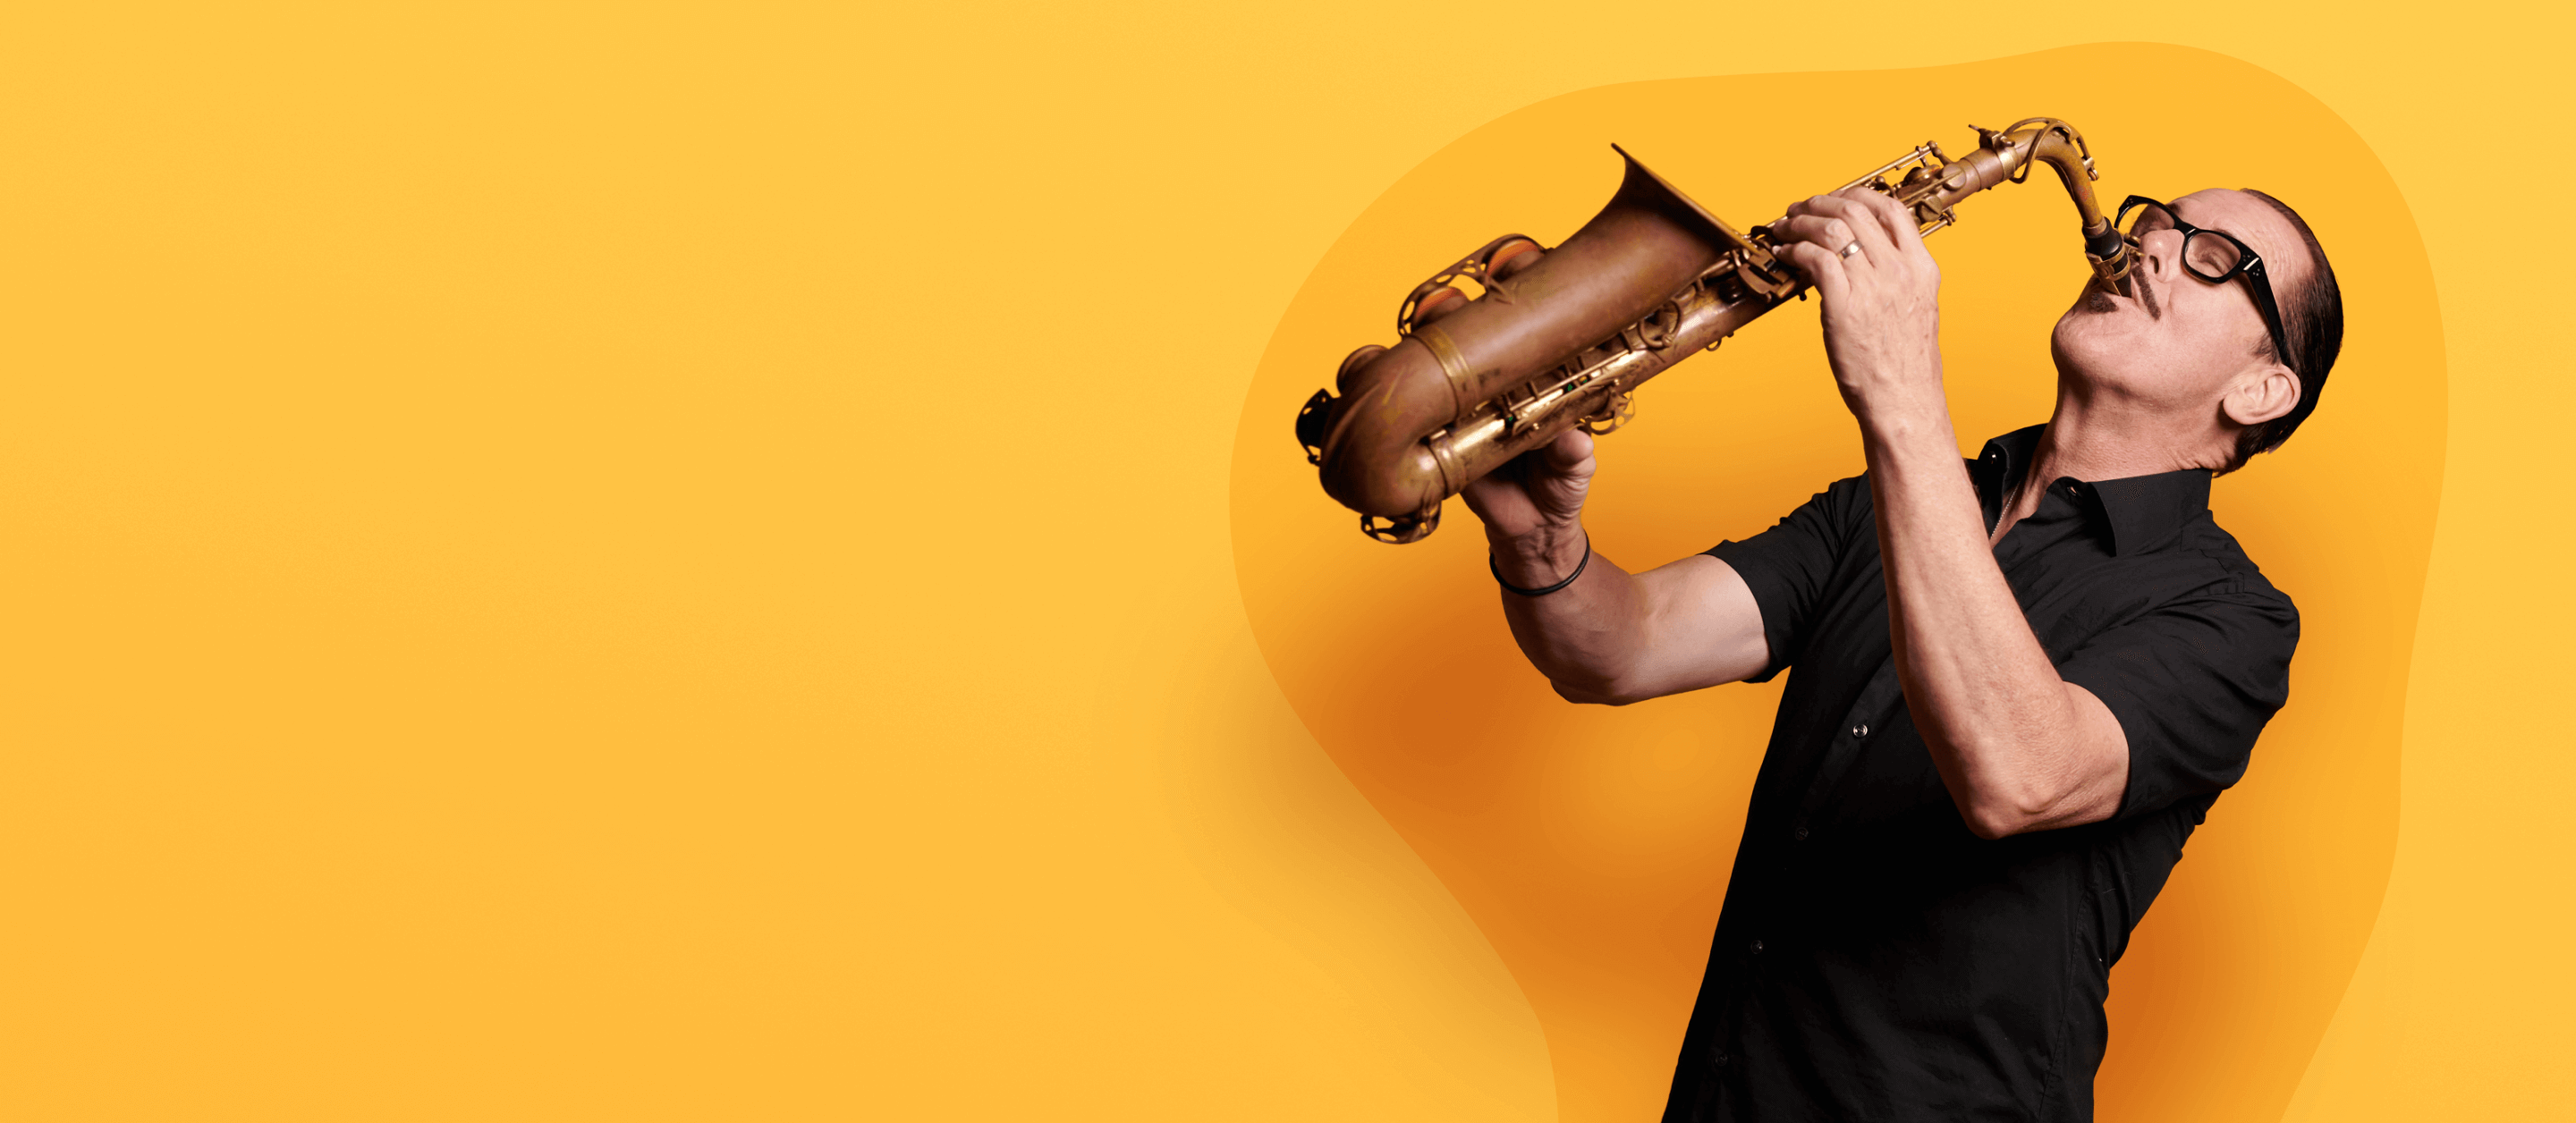 Image of Kirk Pengilly playing a saxophone with bright yellow background